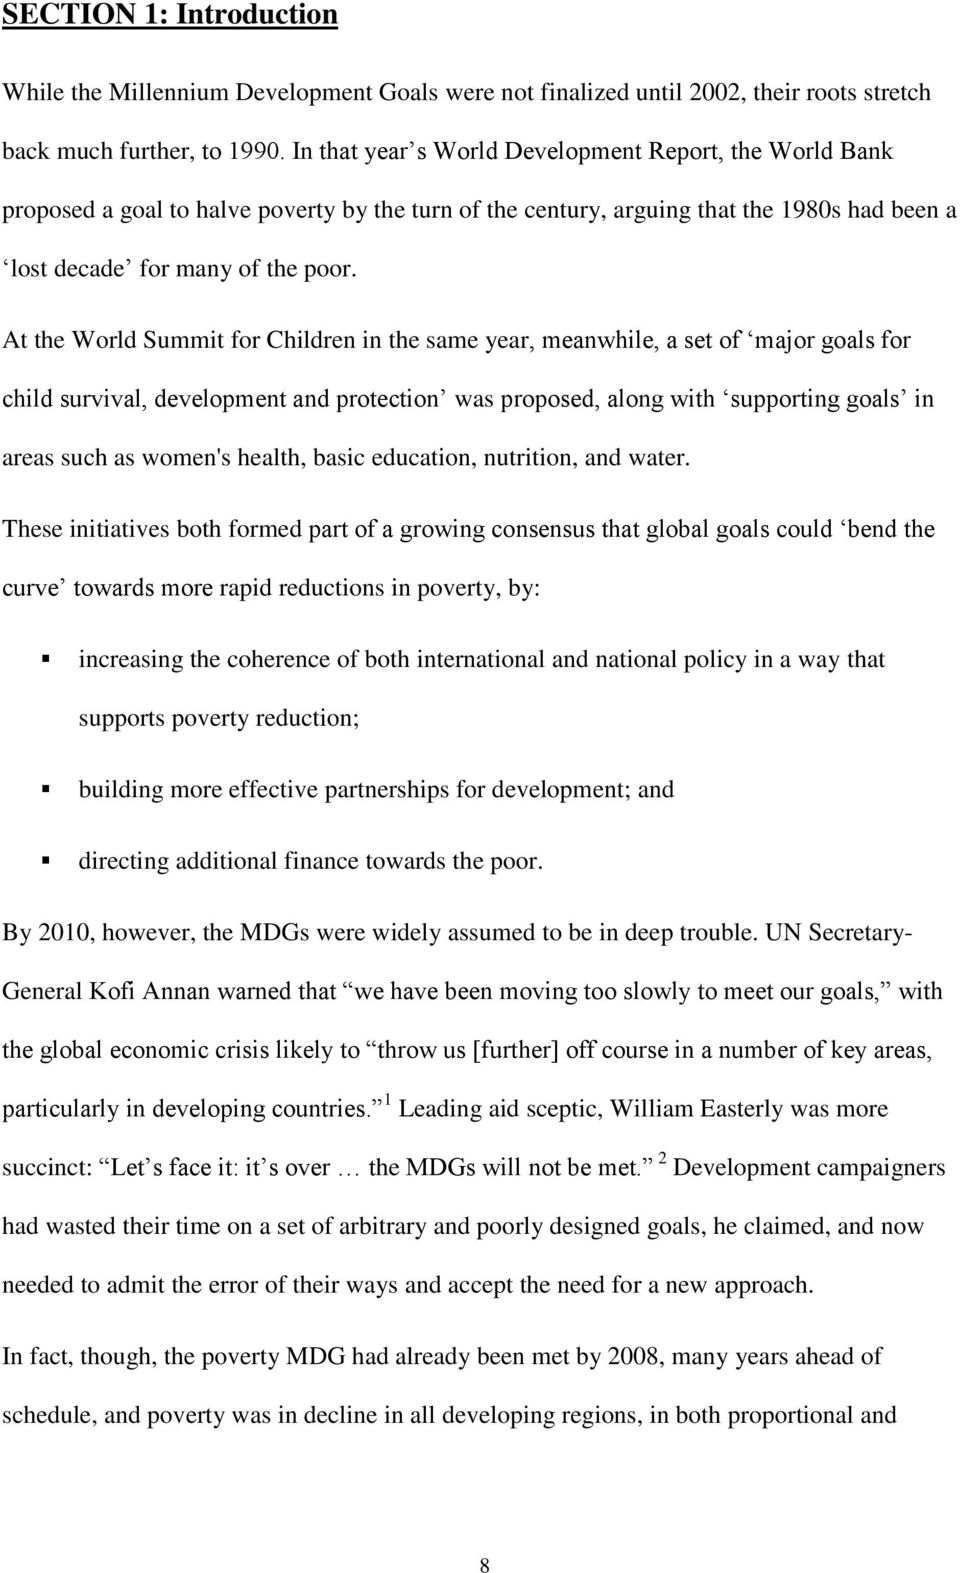 At the World Summit for Children in the same year, meanwhile, a set of major goals for child survival, development and protection was proposed, along with supporting goals in areas such as women's